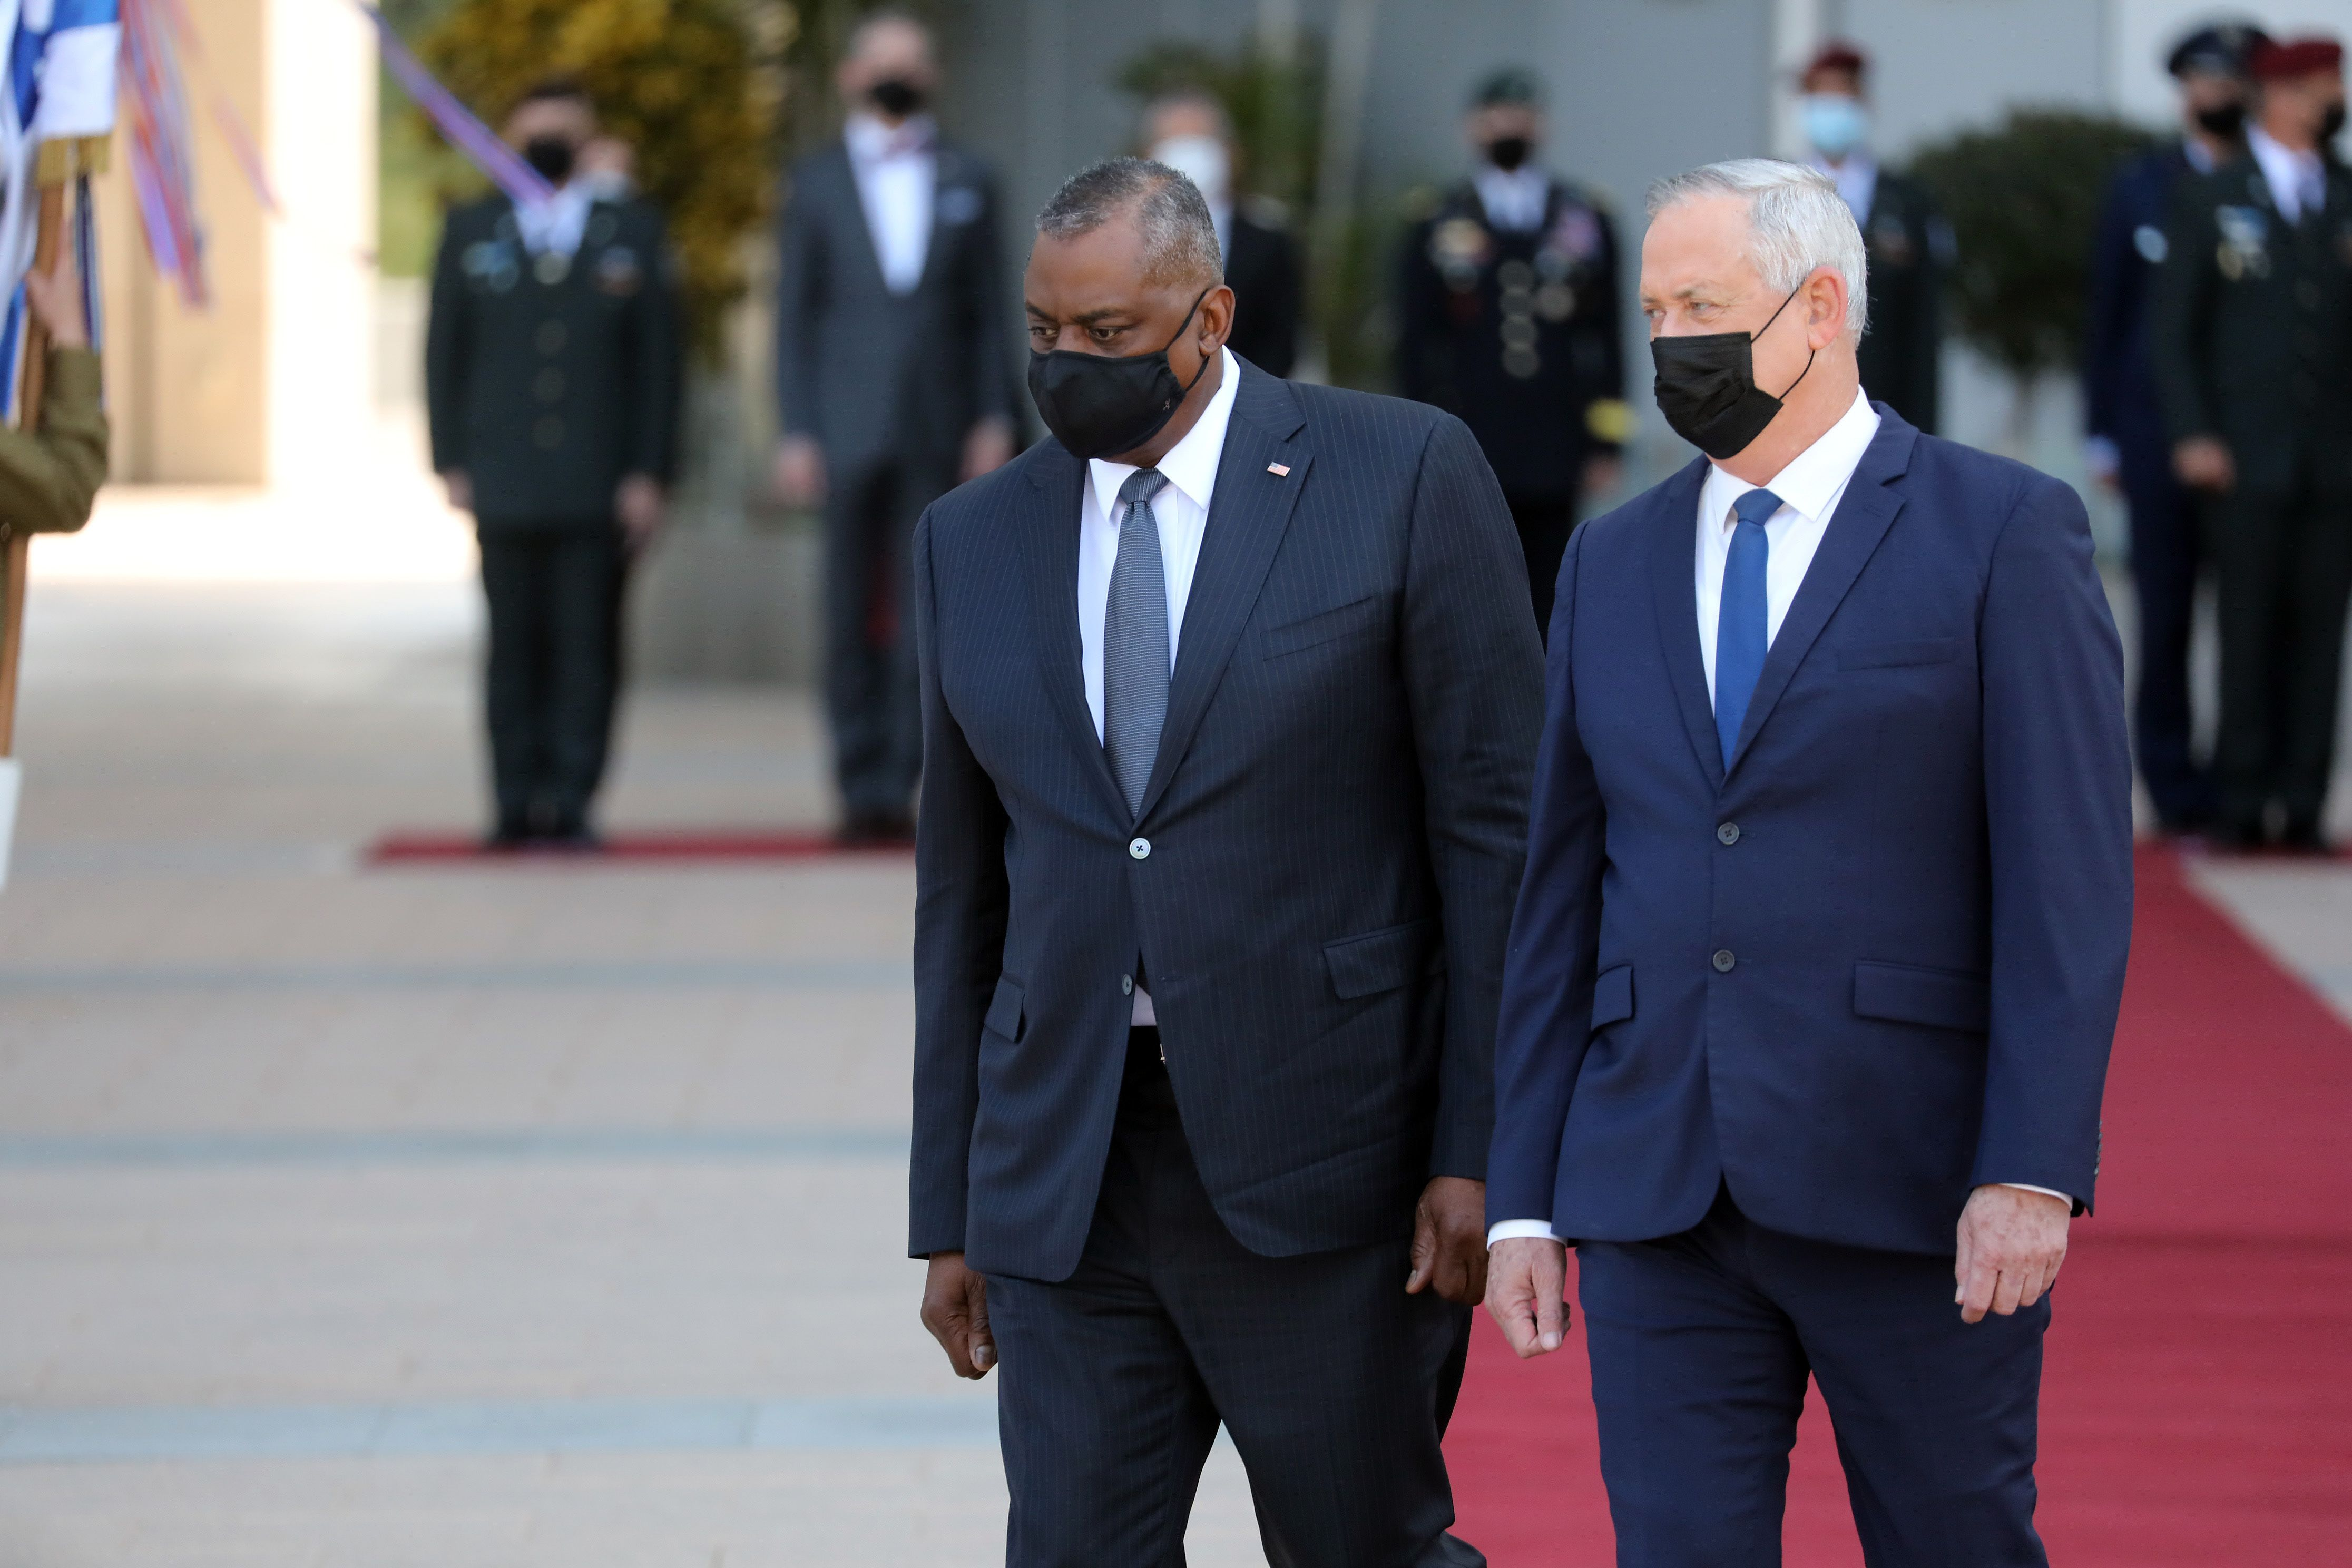 U.S. Defense Secretary Lloyd Austin (L) and Israeli Defense Minister Benny Gantz are seen at a ceremony at the Kirya military base in Tel Aviv, Israel on April 11, 2021.